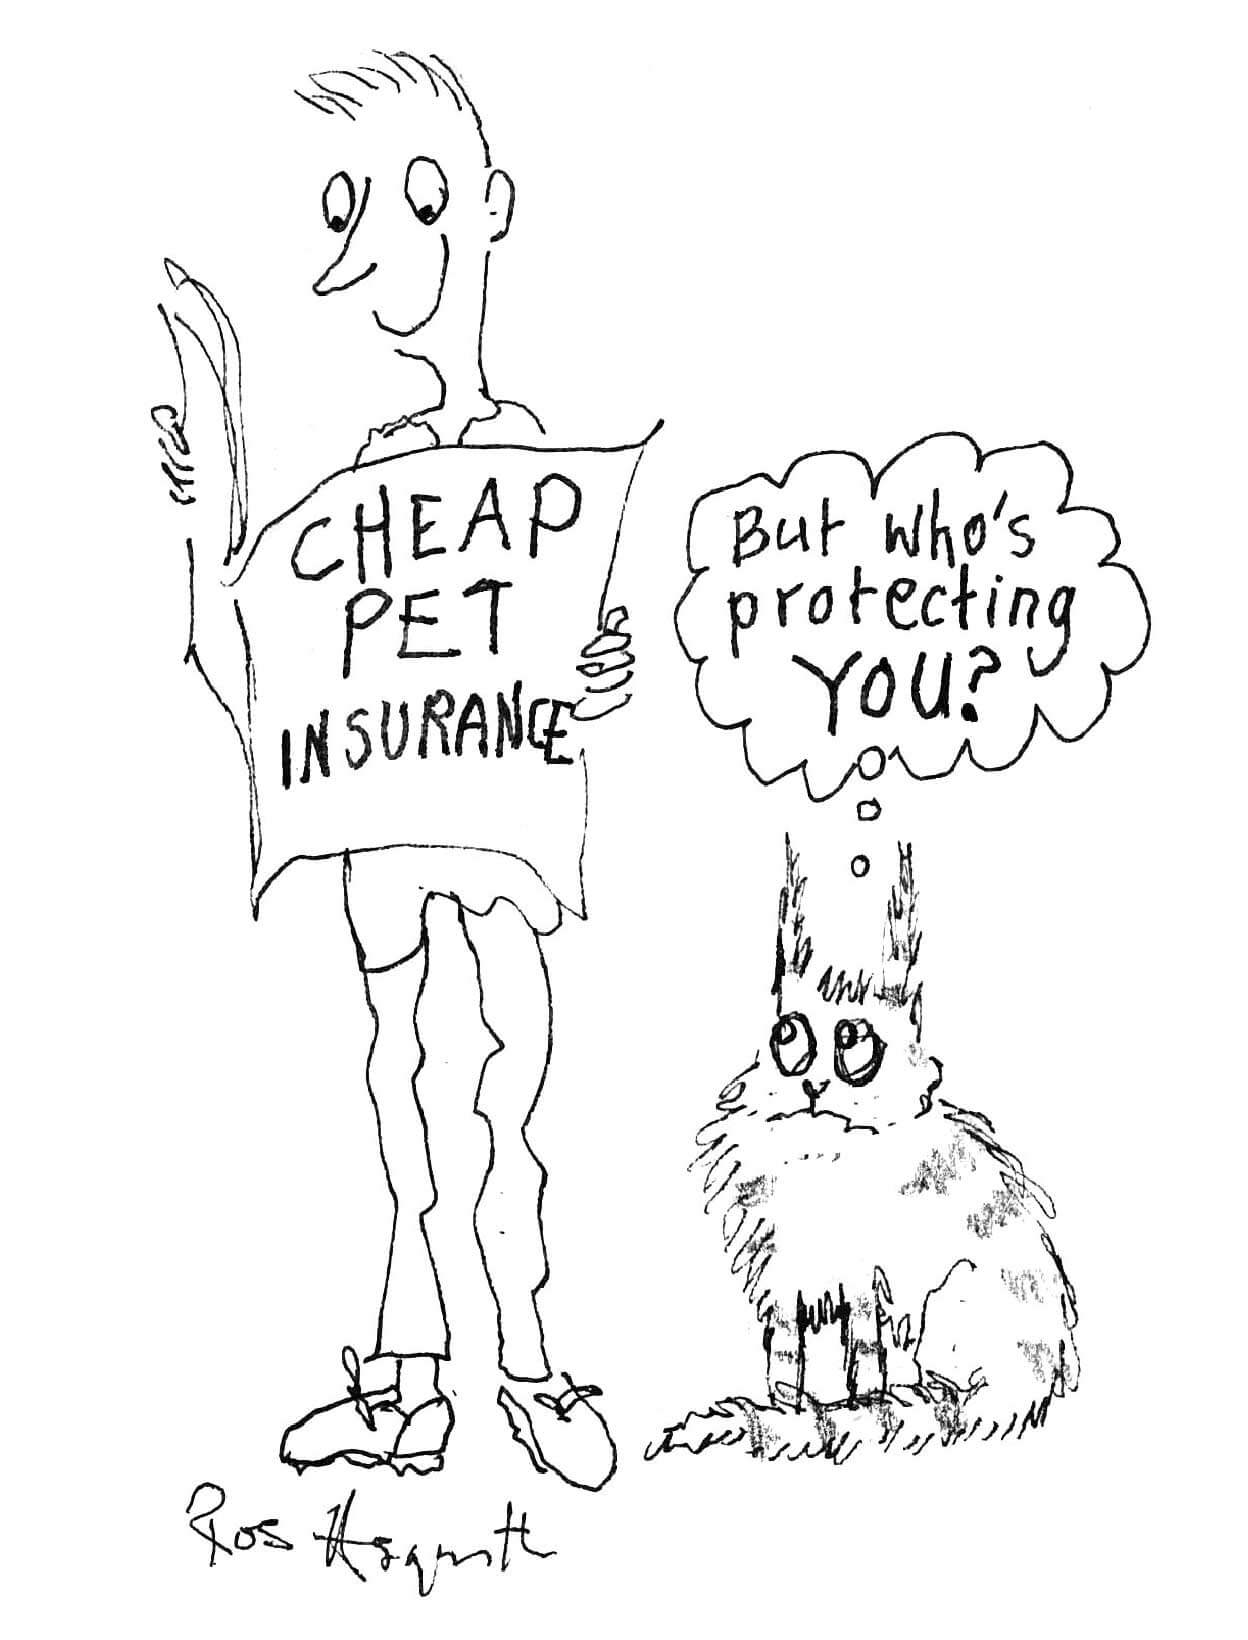 Ruth Whitehead Associates - Protection cartoon